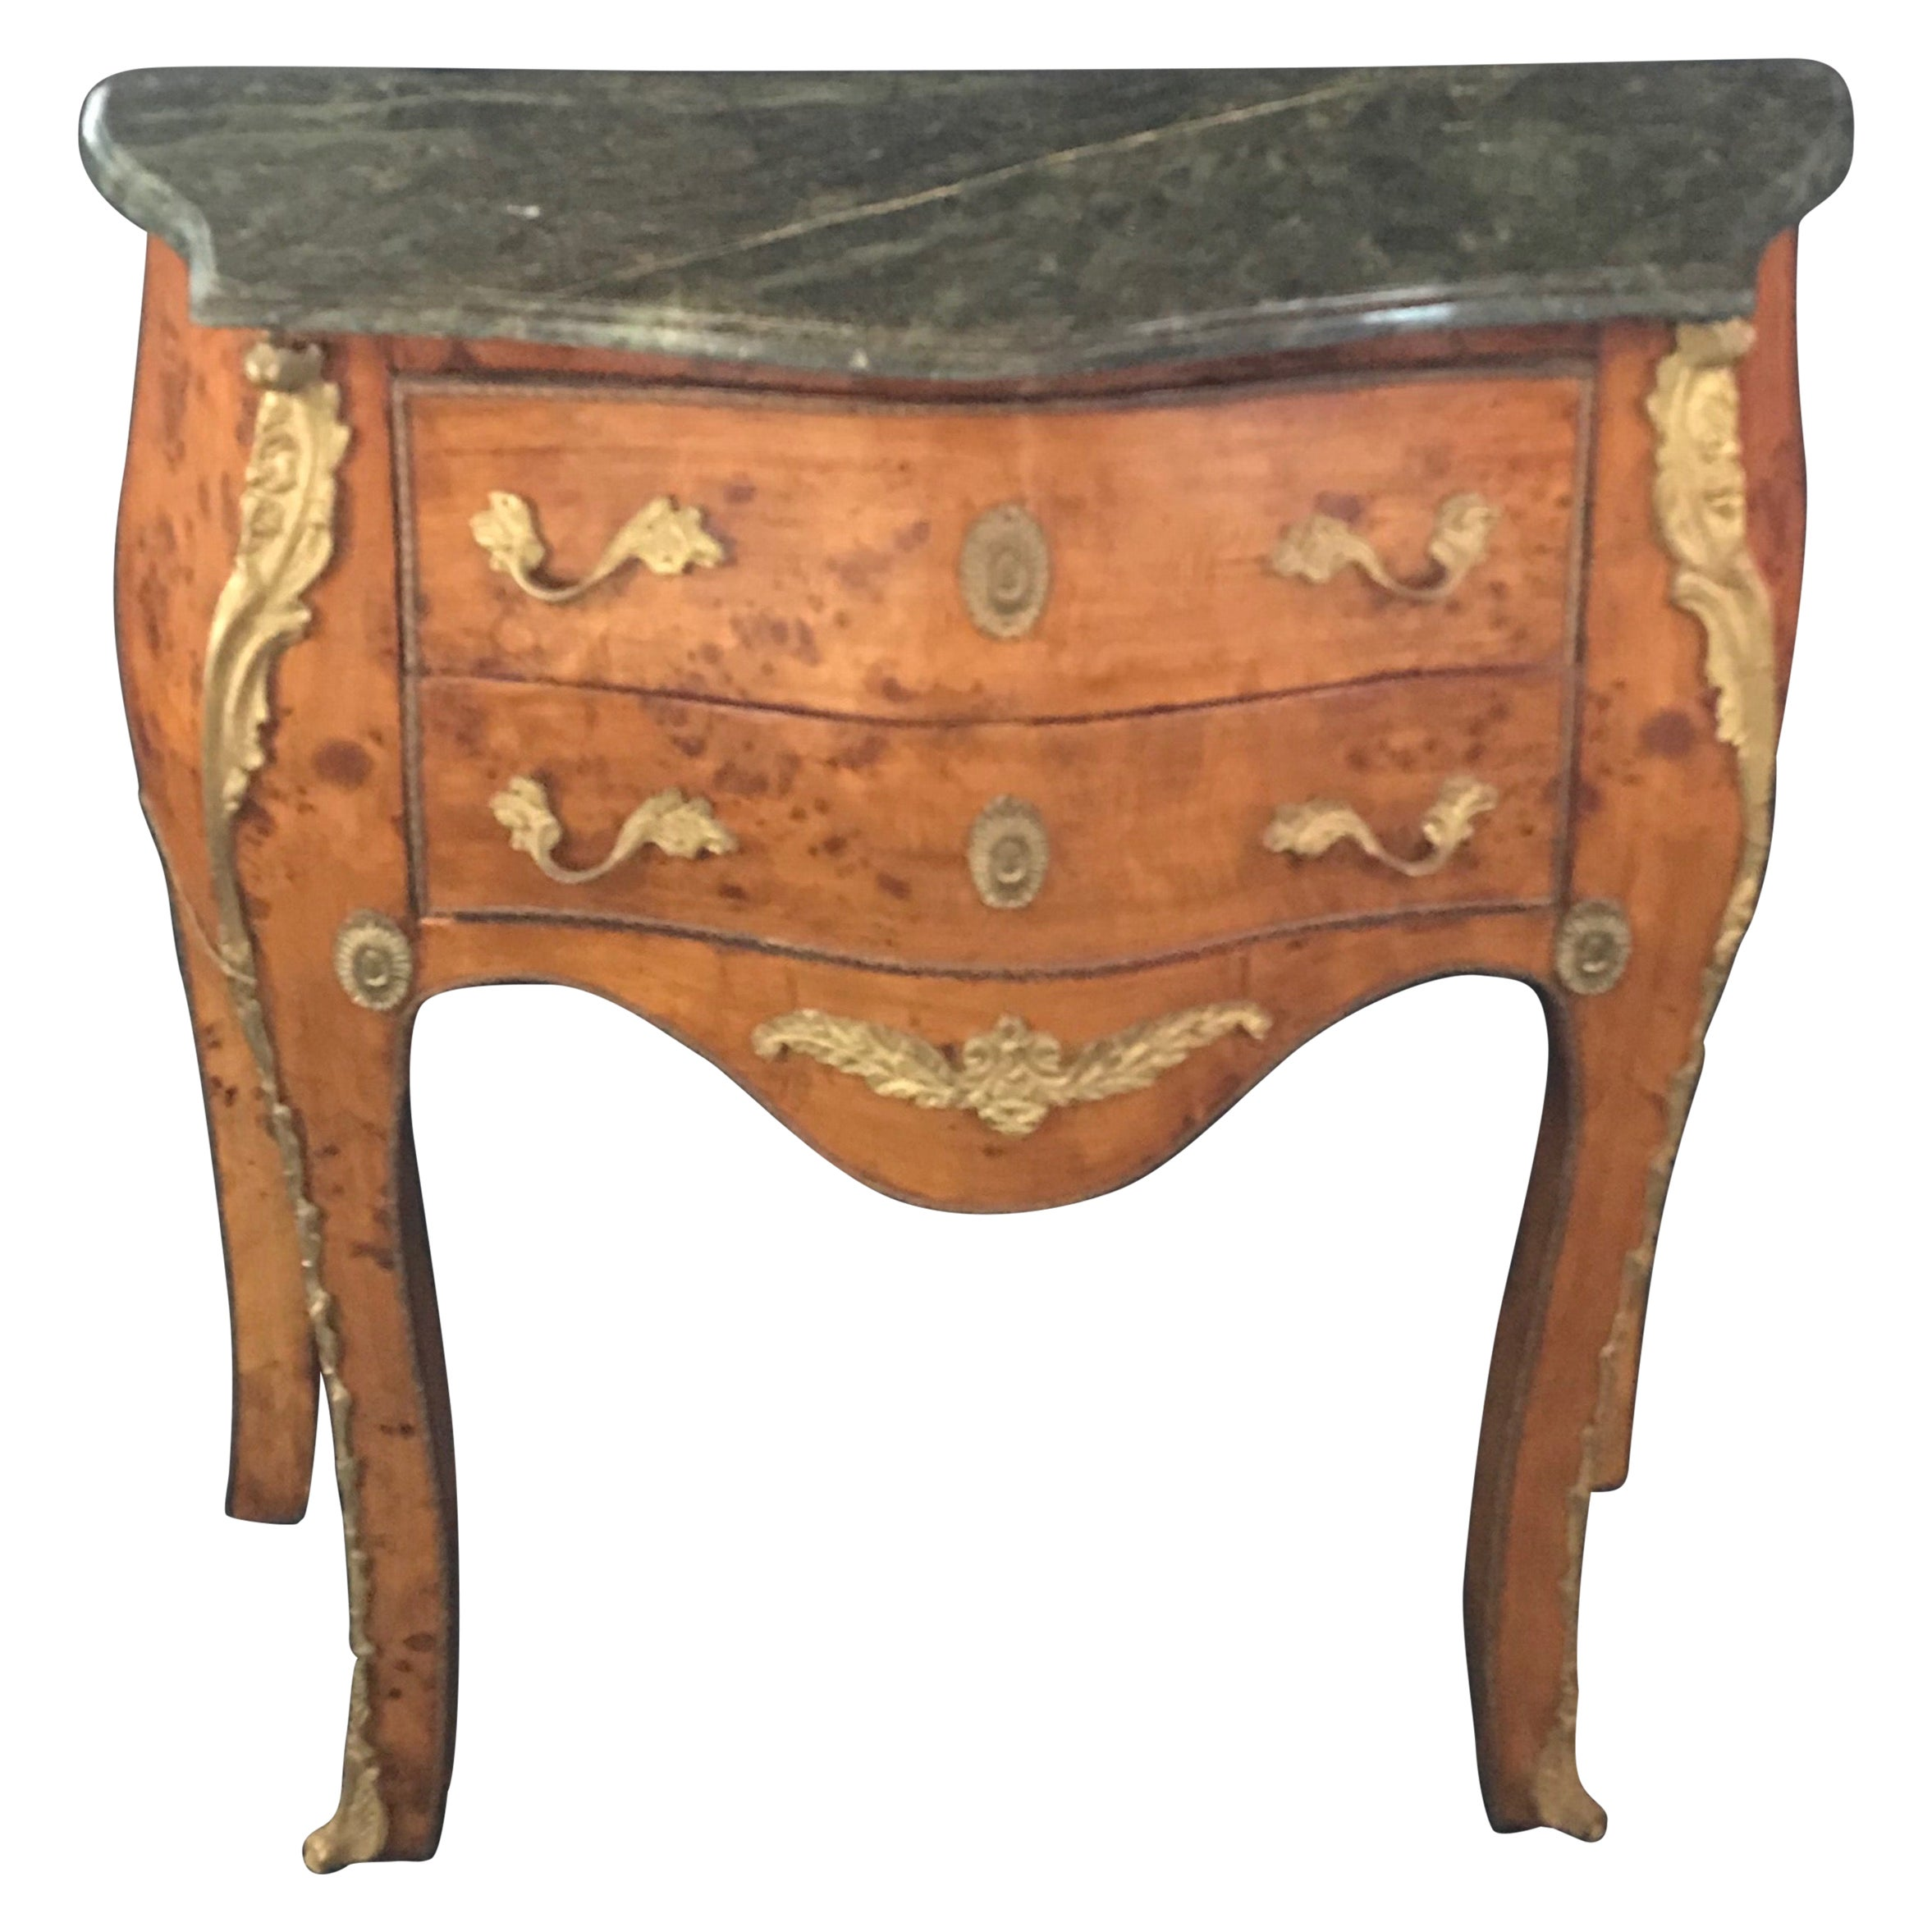 Beautiful Louis XV Petite Commode Nightstand or Side Table with Marble Top